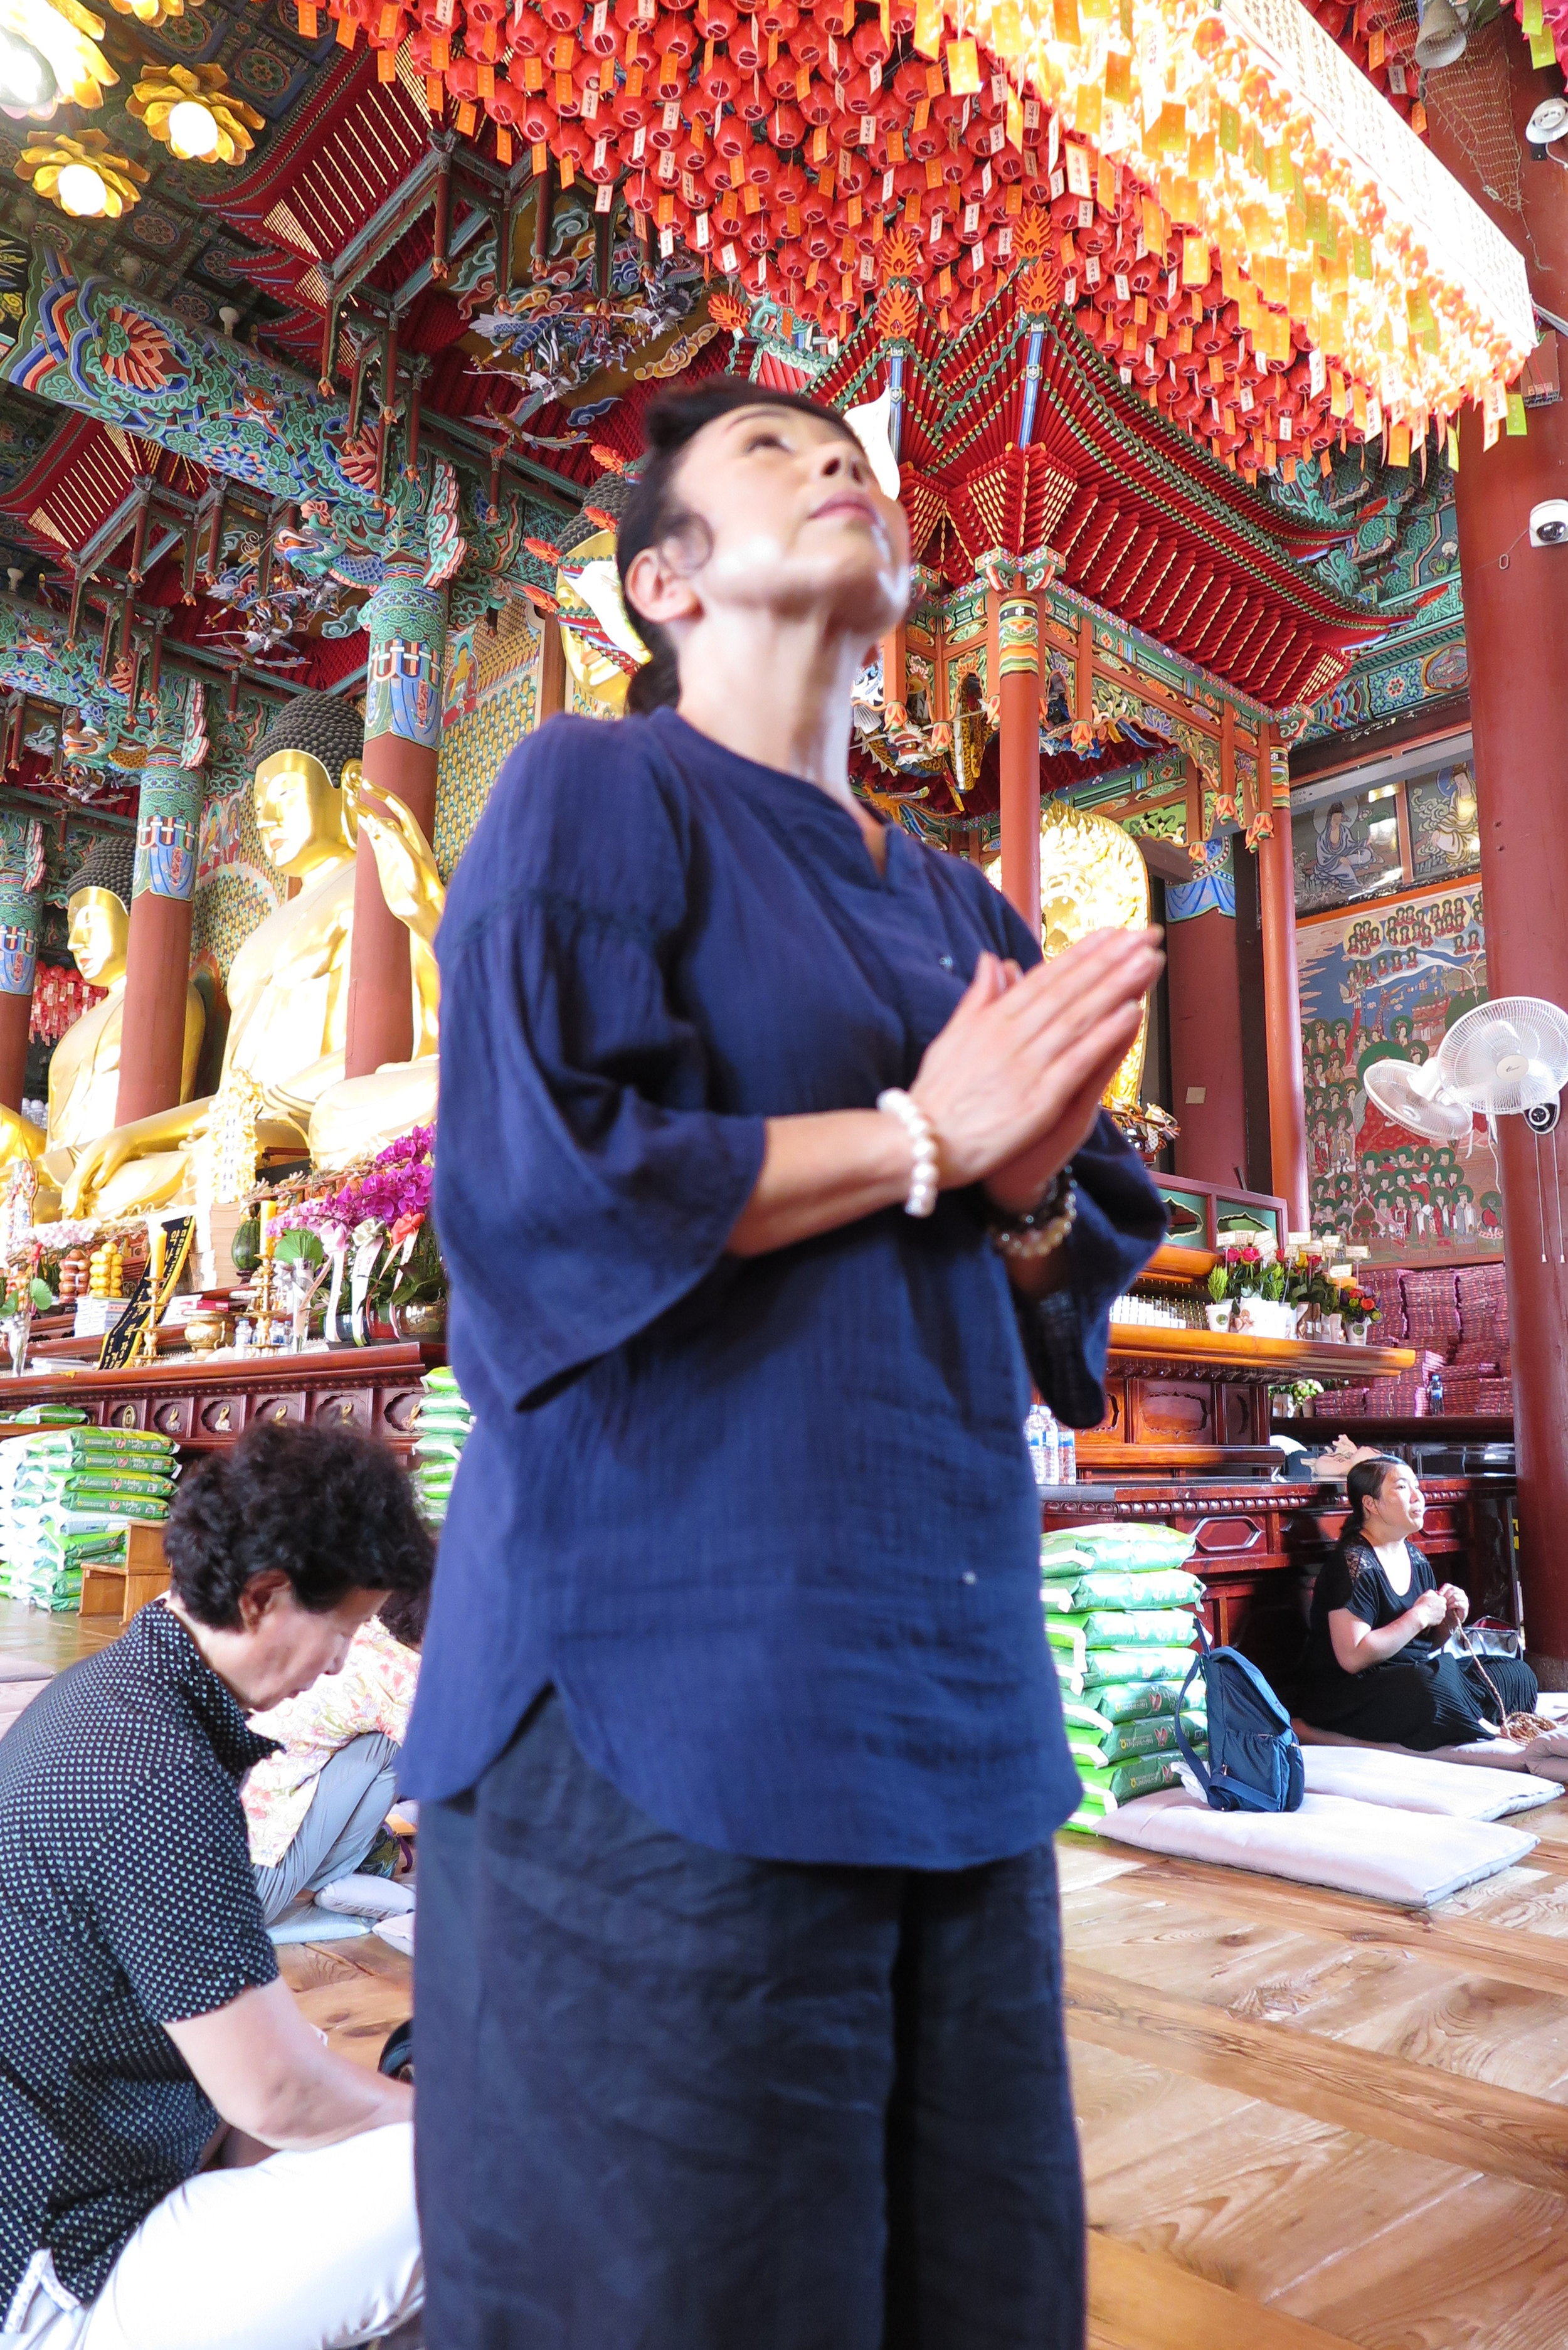 Praying at the Jyogaesa Temple in downtown Seoul